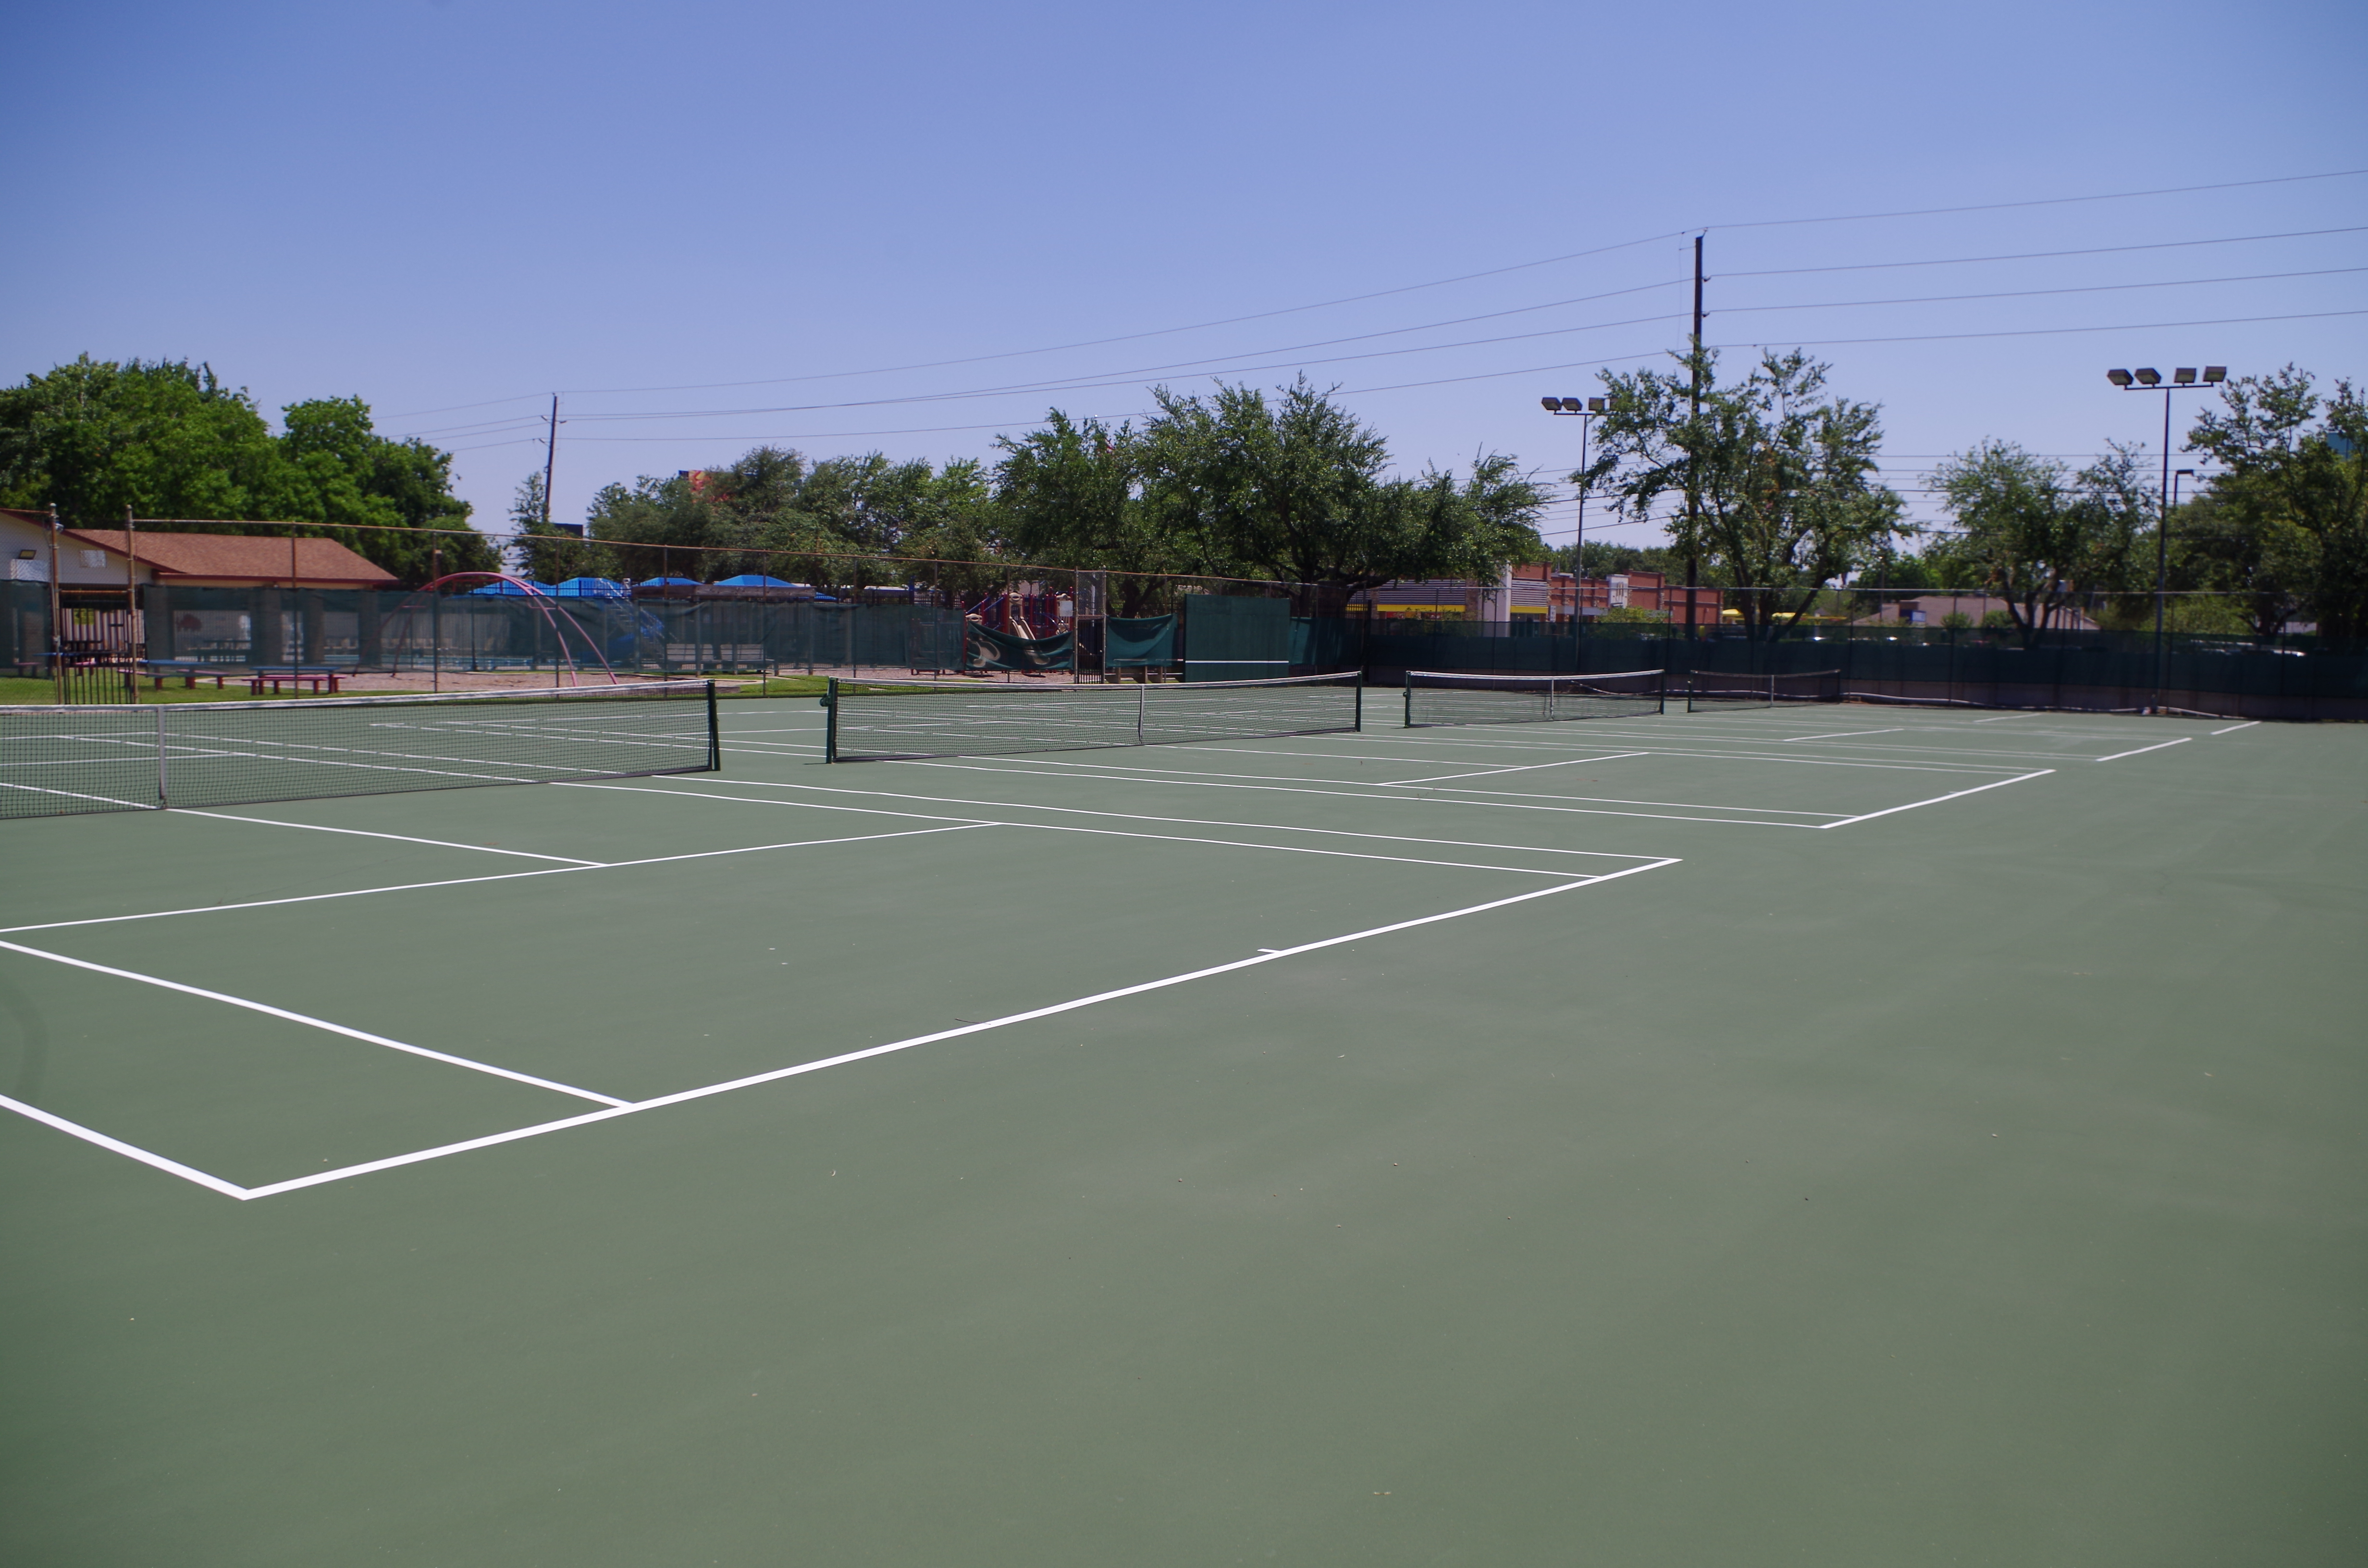 Cairnway Tennis courts